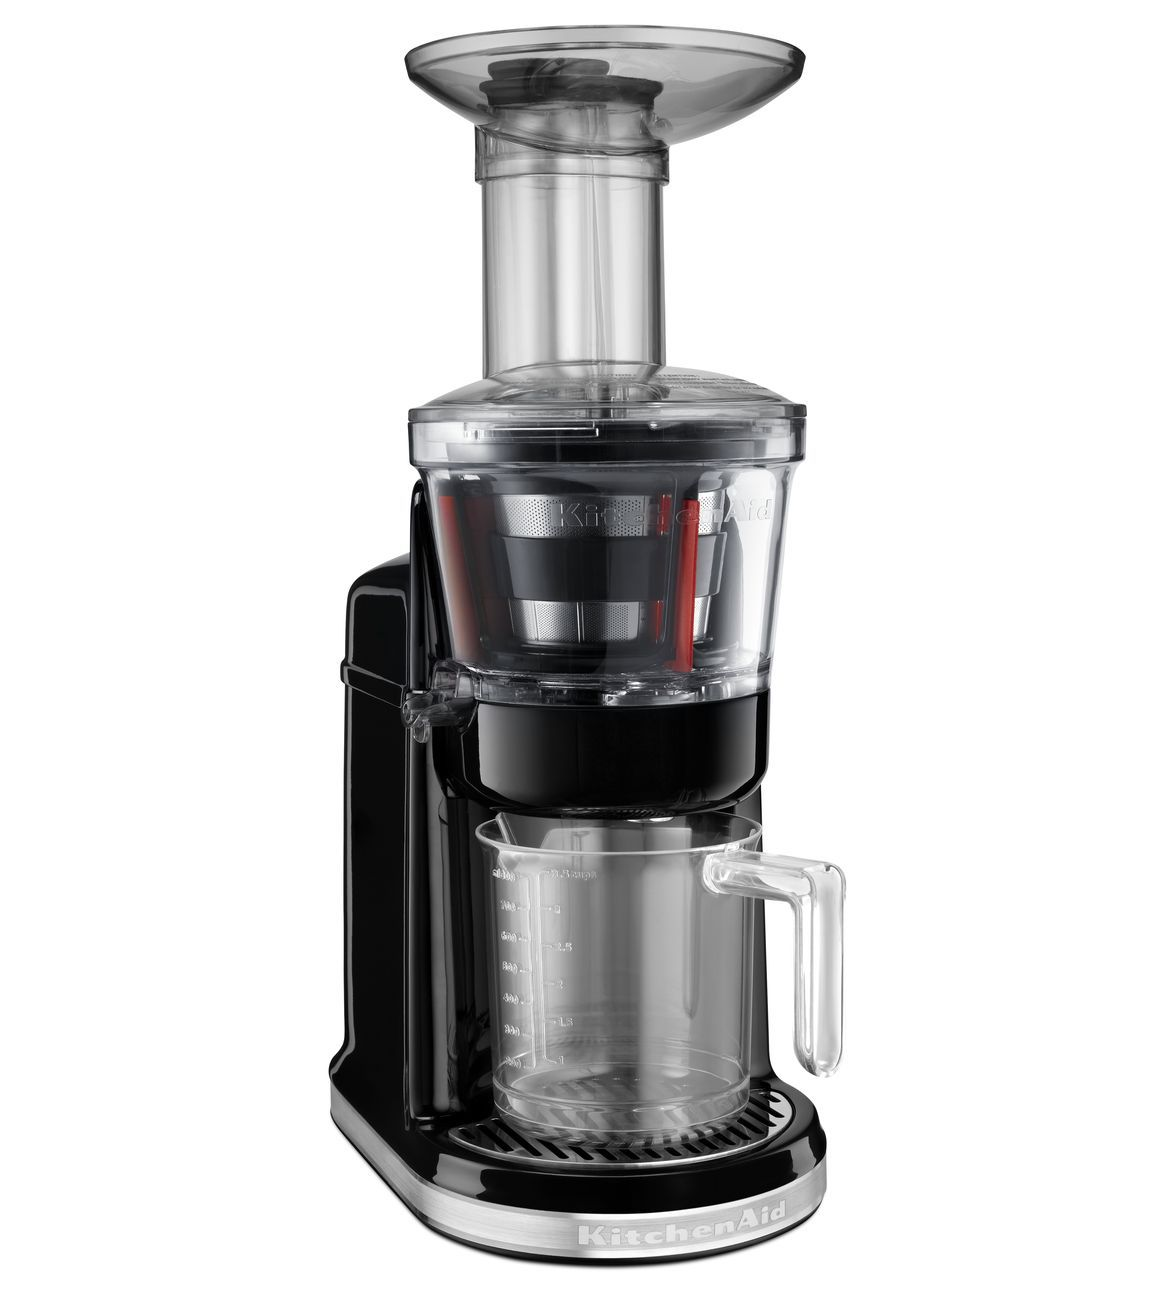 KitchenAid® Maximum Extraction Juicer (slow juicer)